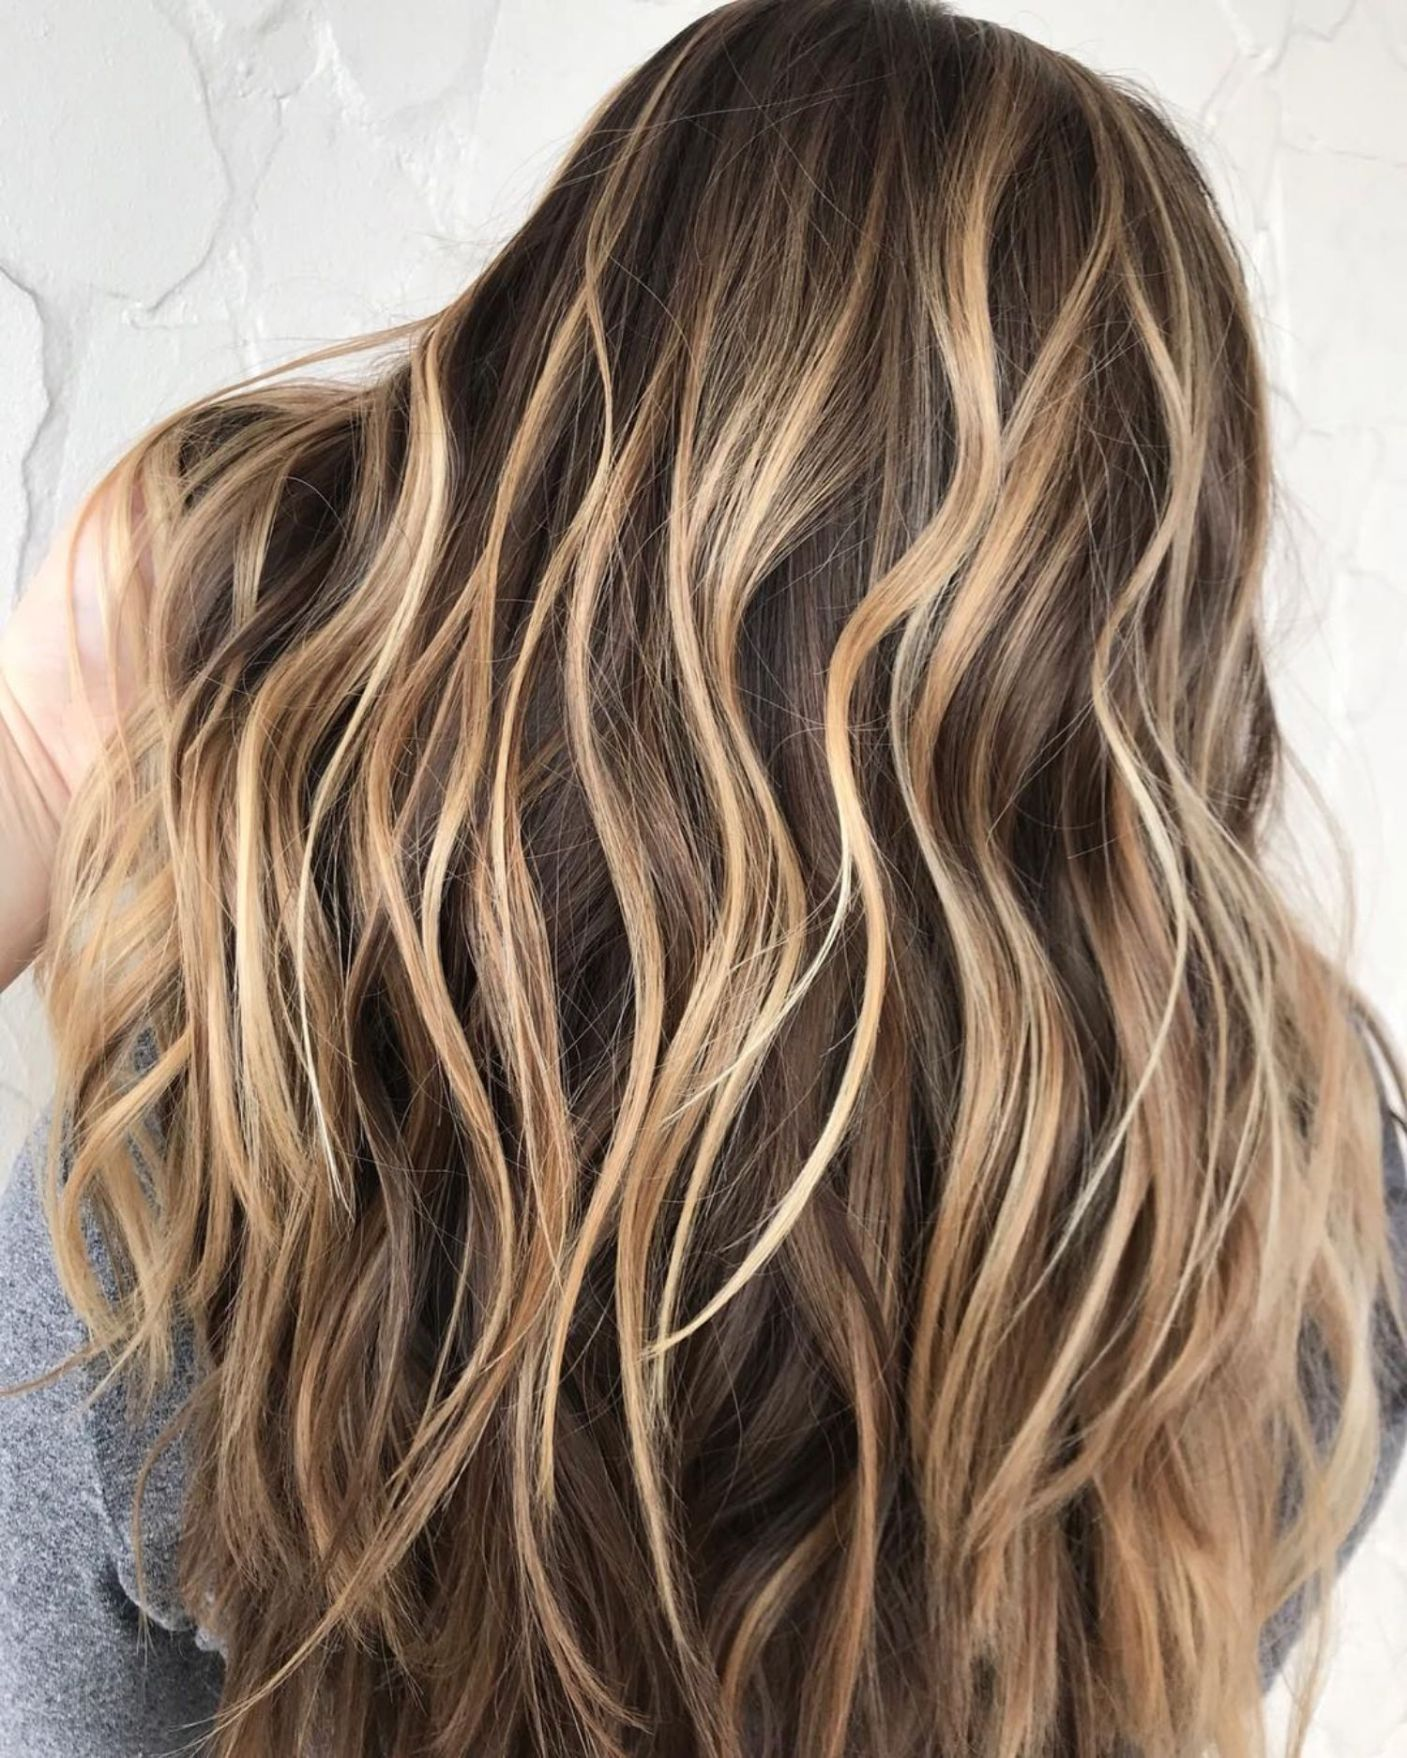 50 Ideas For Light Brown Hair With Highlights And Lowlights Hair Highlights Brown Hair With Blonde Highlights Brown Hair With Highlights